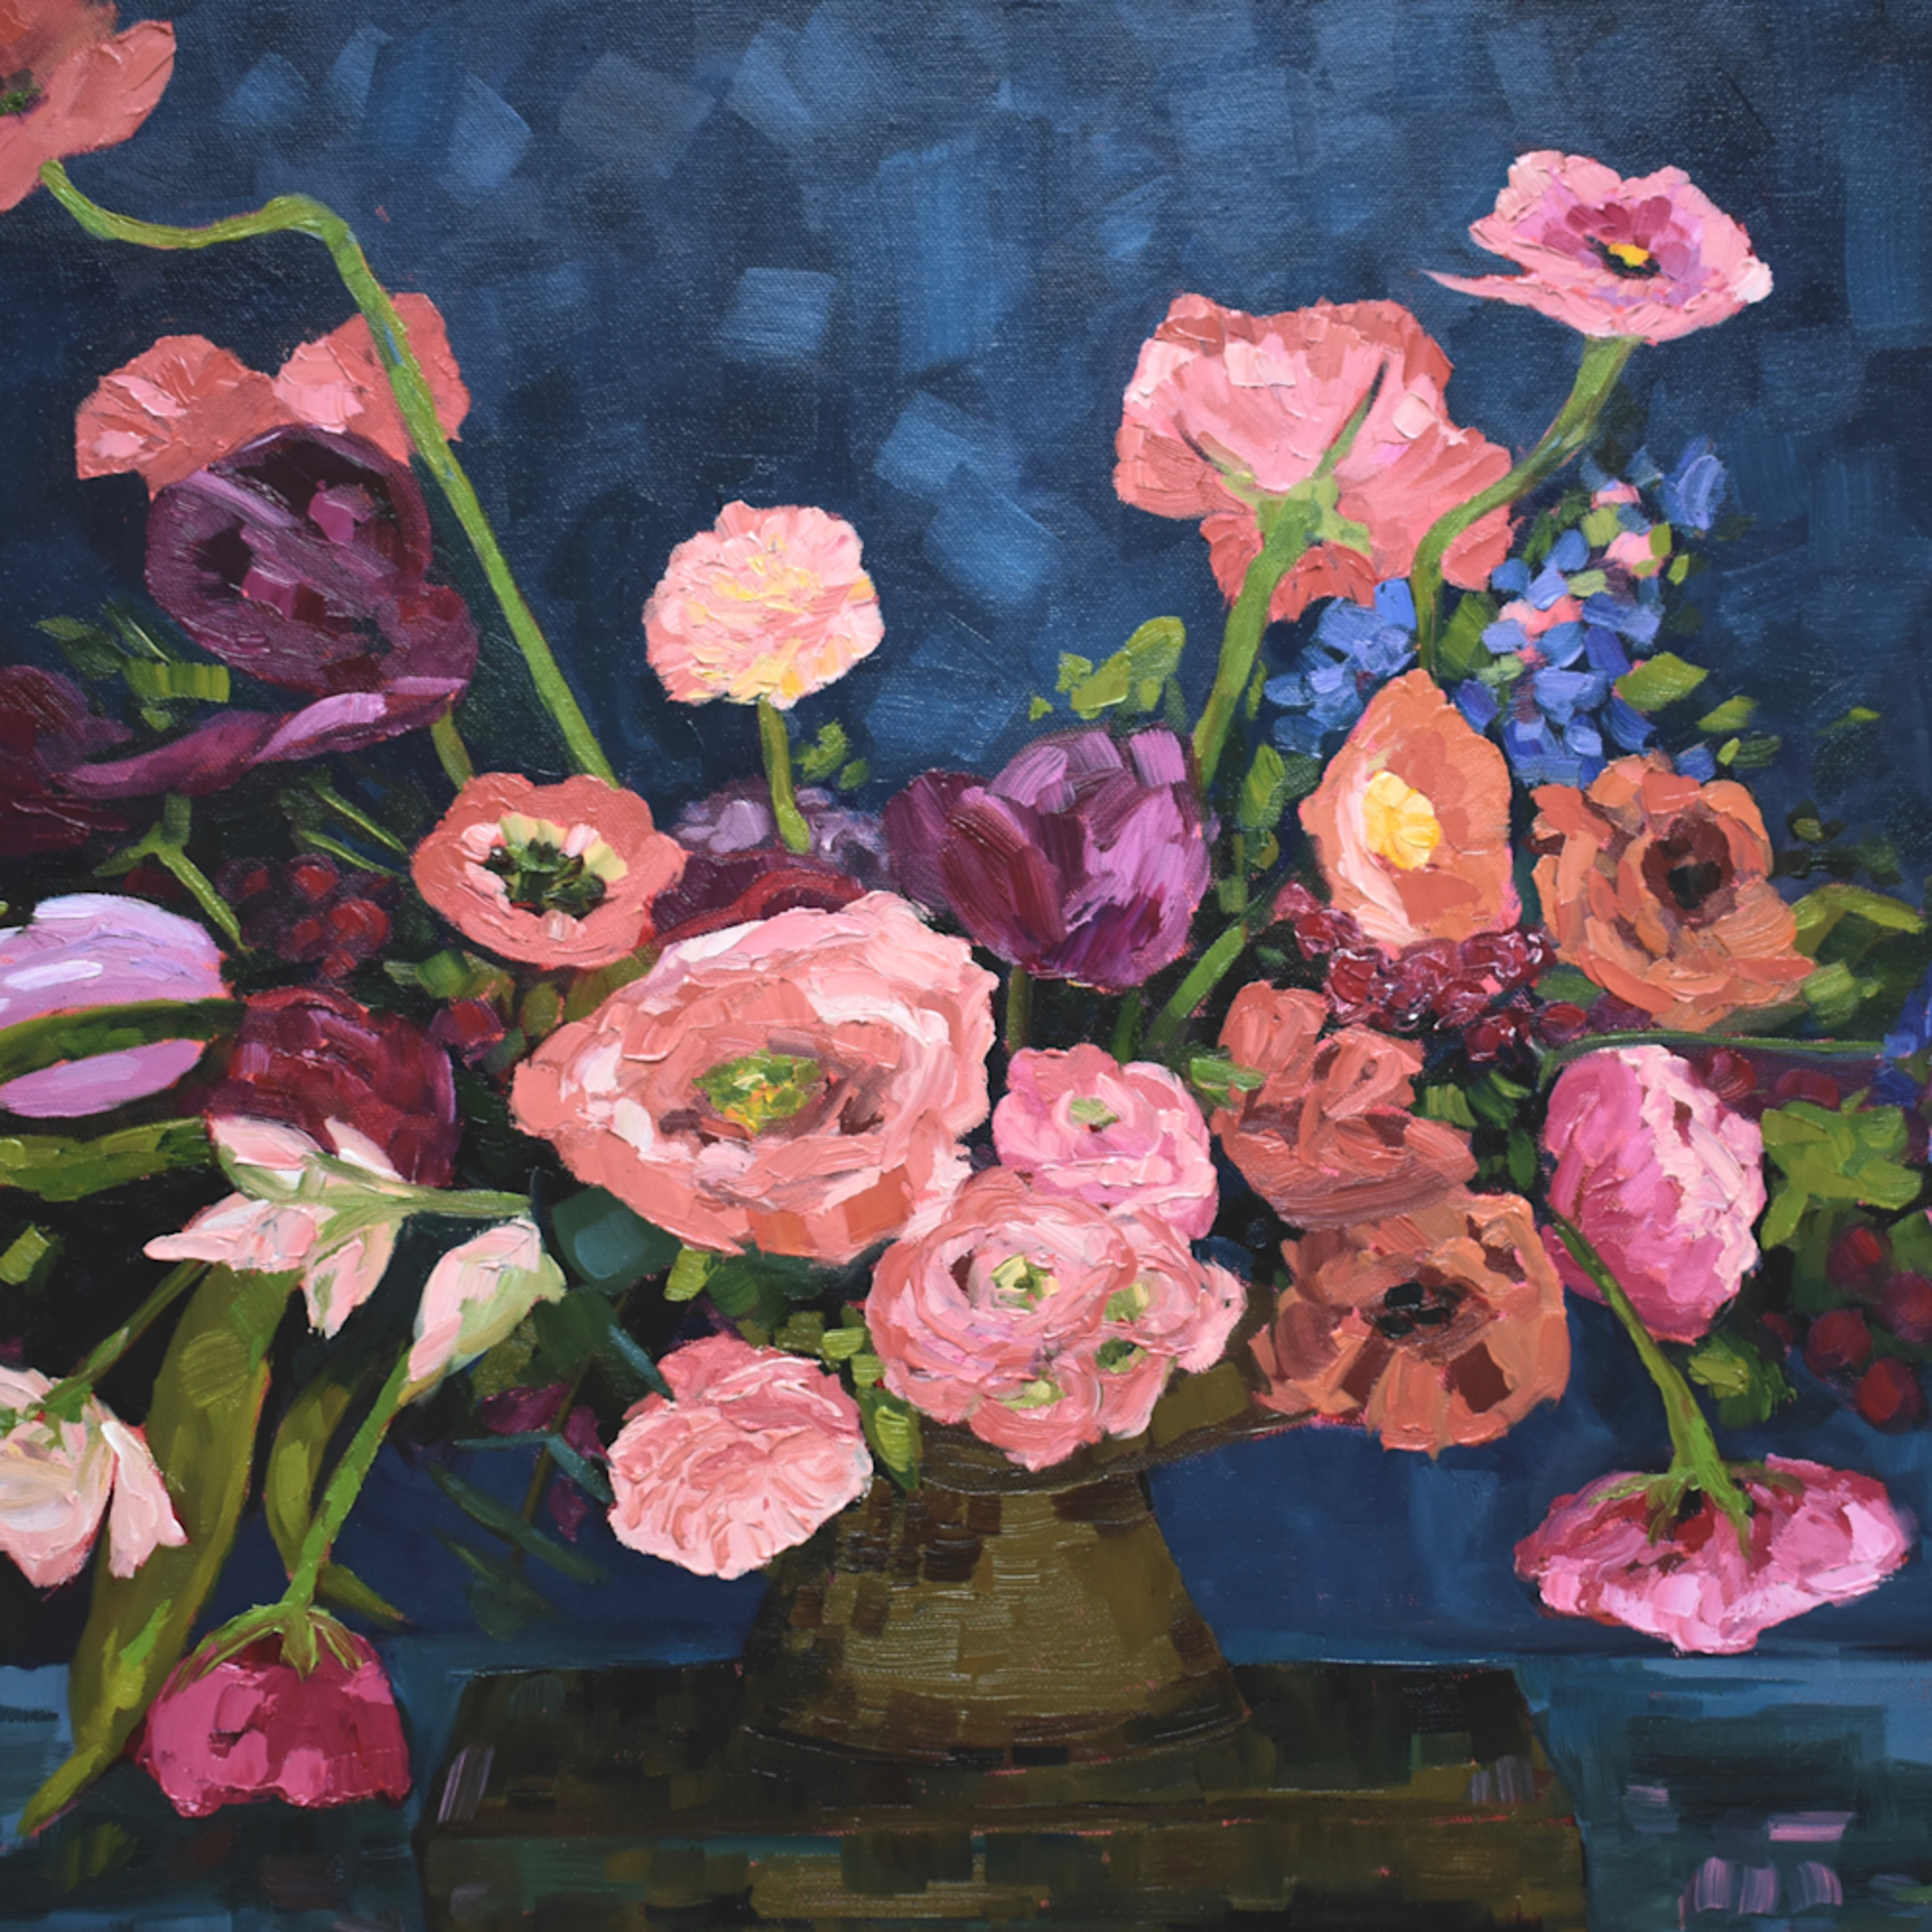 Poppies and ranunculous flowers 30x40 emagtx